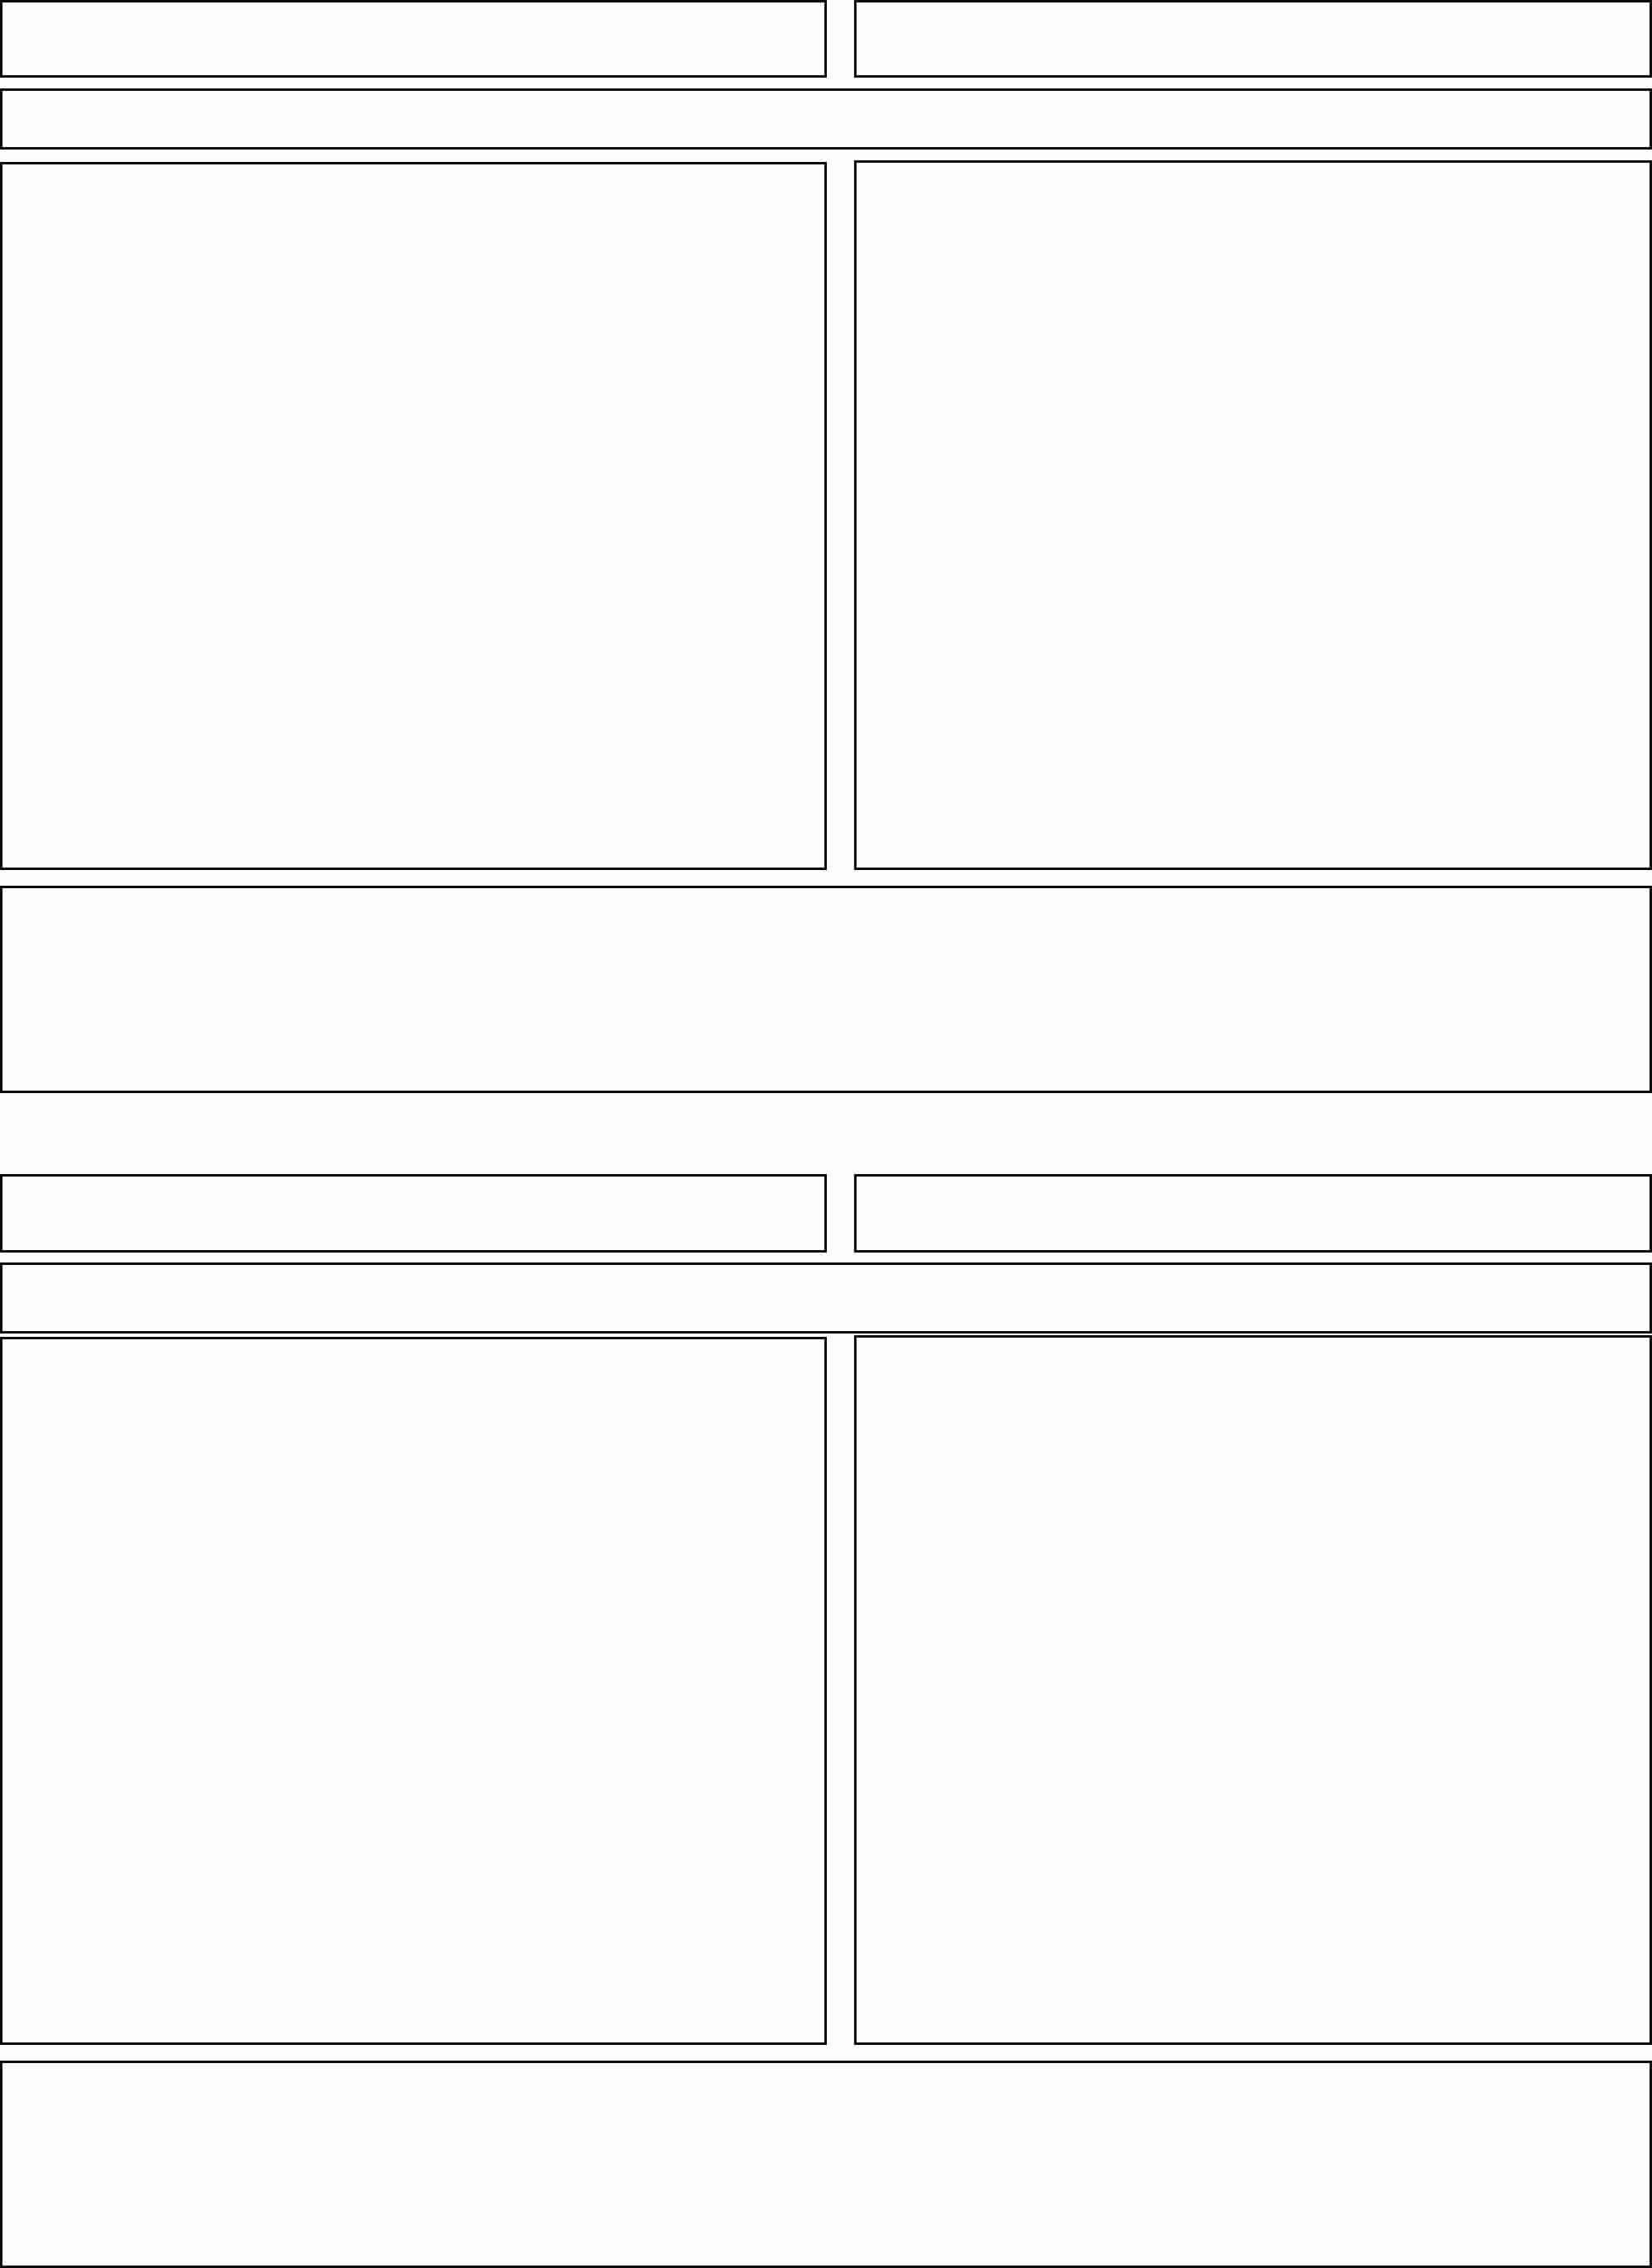 Comfortable 4X6 Note Card Template – Www.szf.se With Regard To 4X6 Note Card Template Word